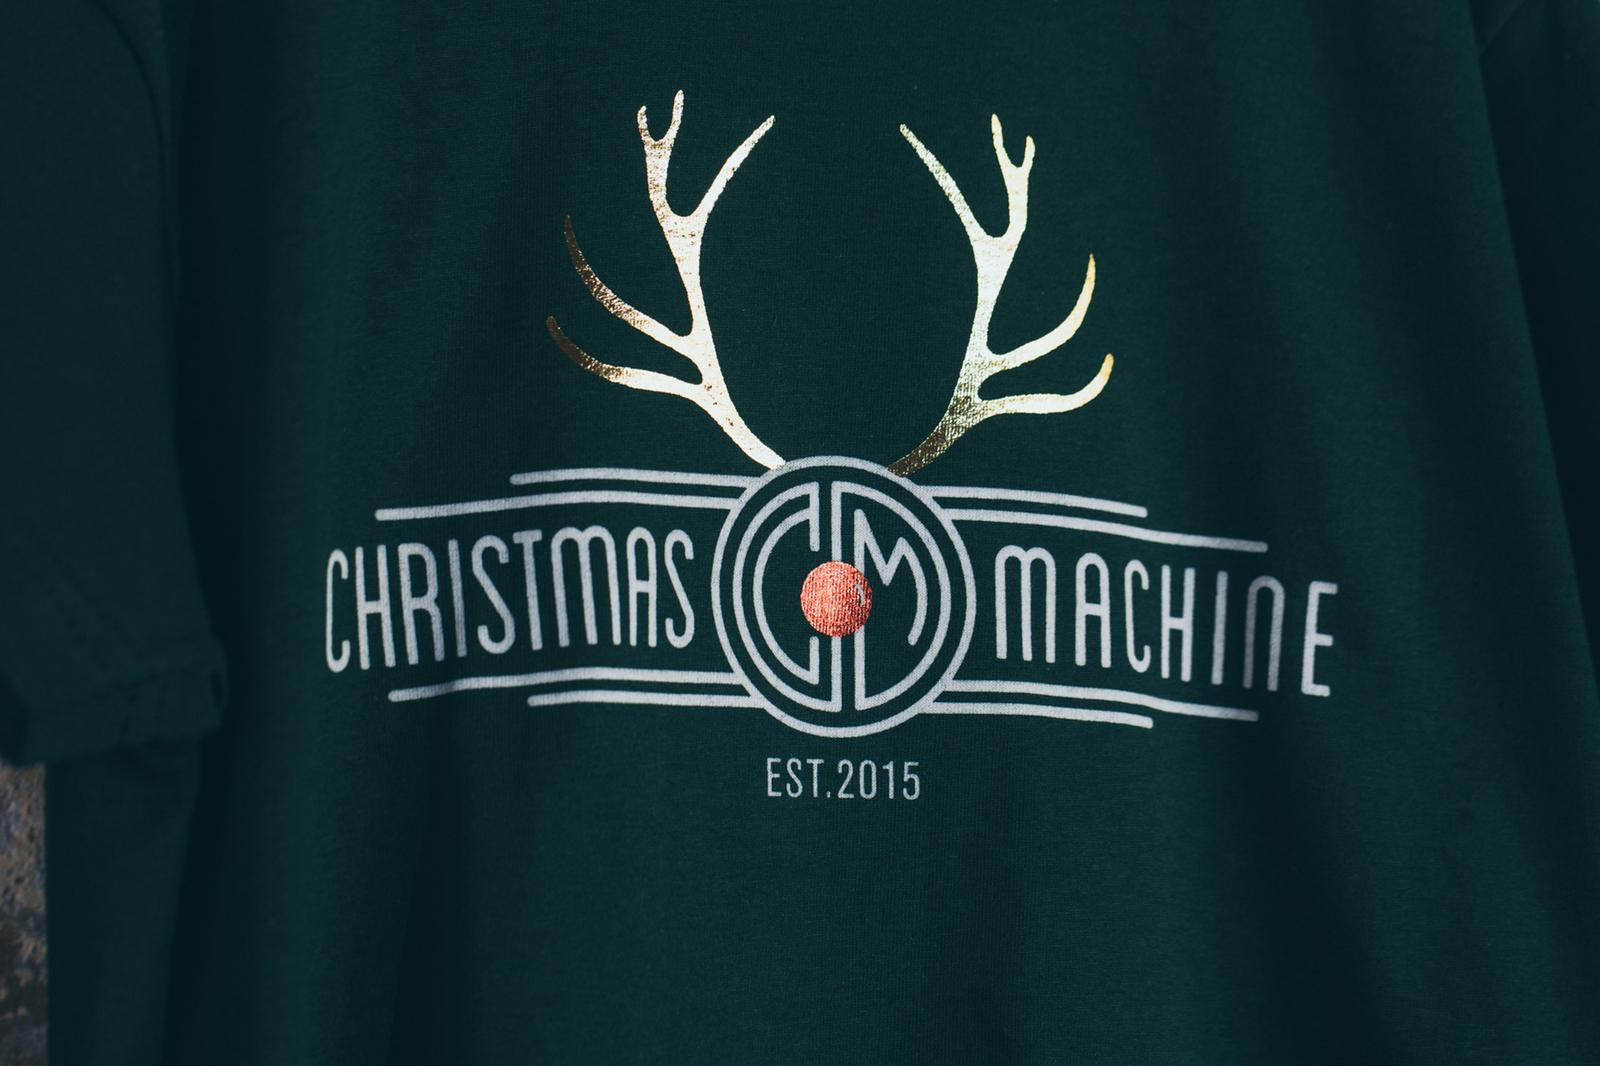 Kids. Christmas&Machine Tee.